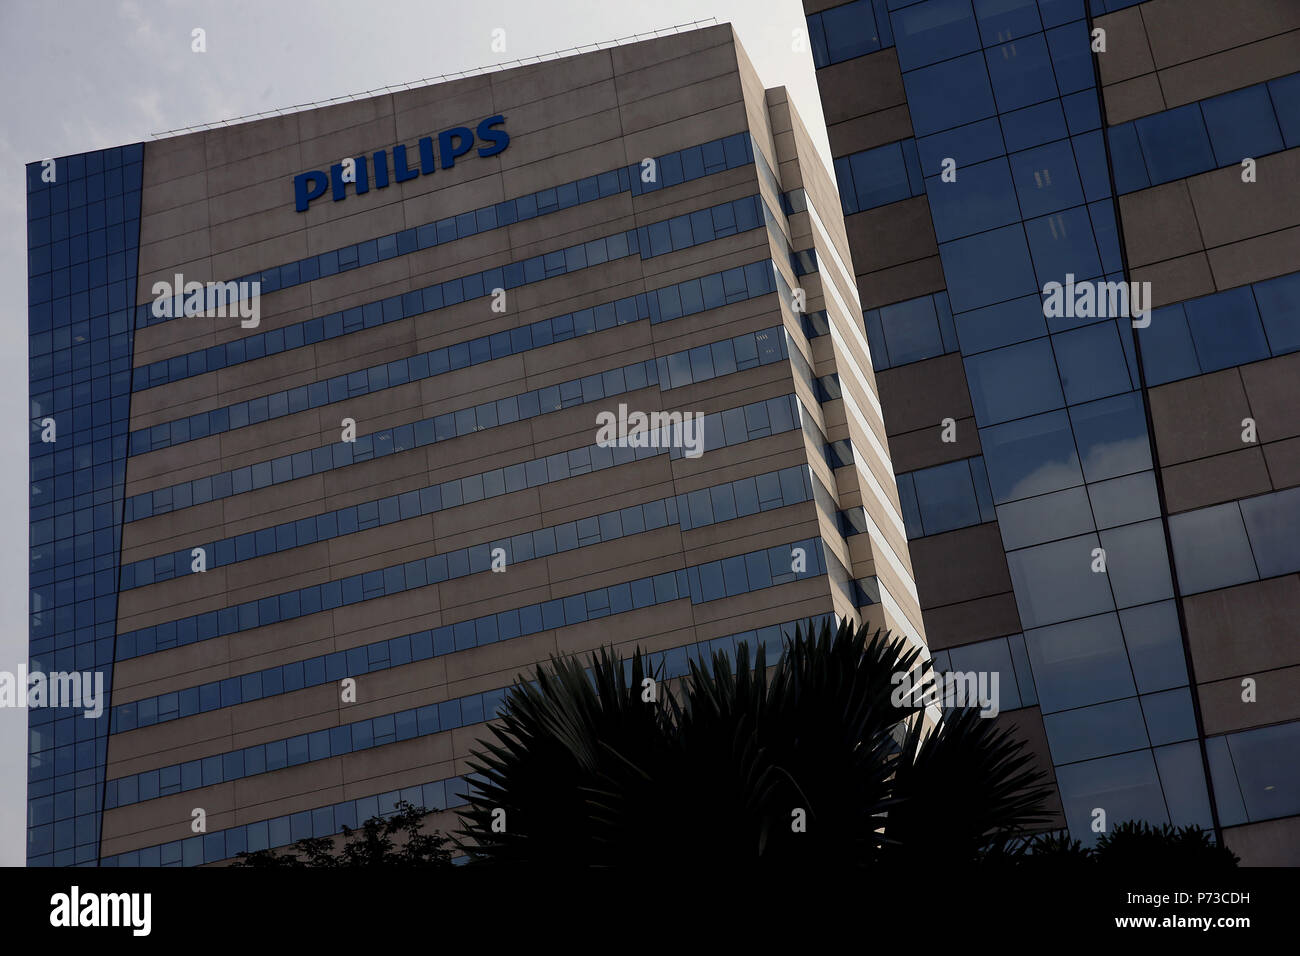 A view of the Phillips headquarters where, according to G1, some arrests are takng place, in Sao Paulo, Brazil, 04 July 2018. The Brazilian Polie dismantled a cartel that operated with over 30 companies through fraud in public tenders to provide medical devices and supplies in Brazil. EFE/Marcelo Chello - Stock Image